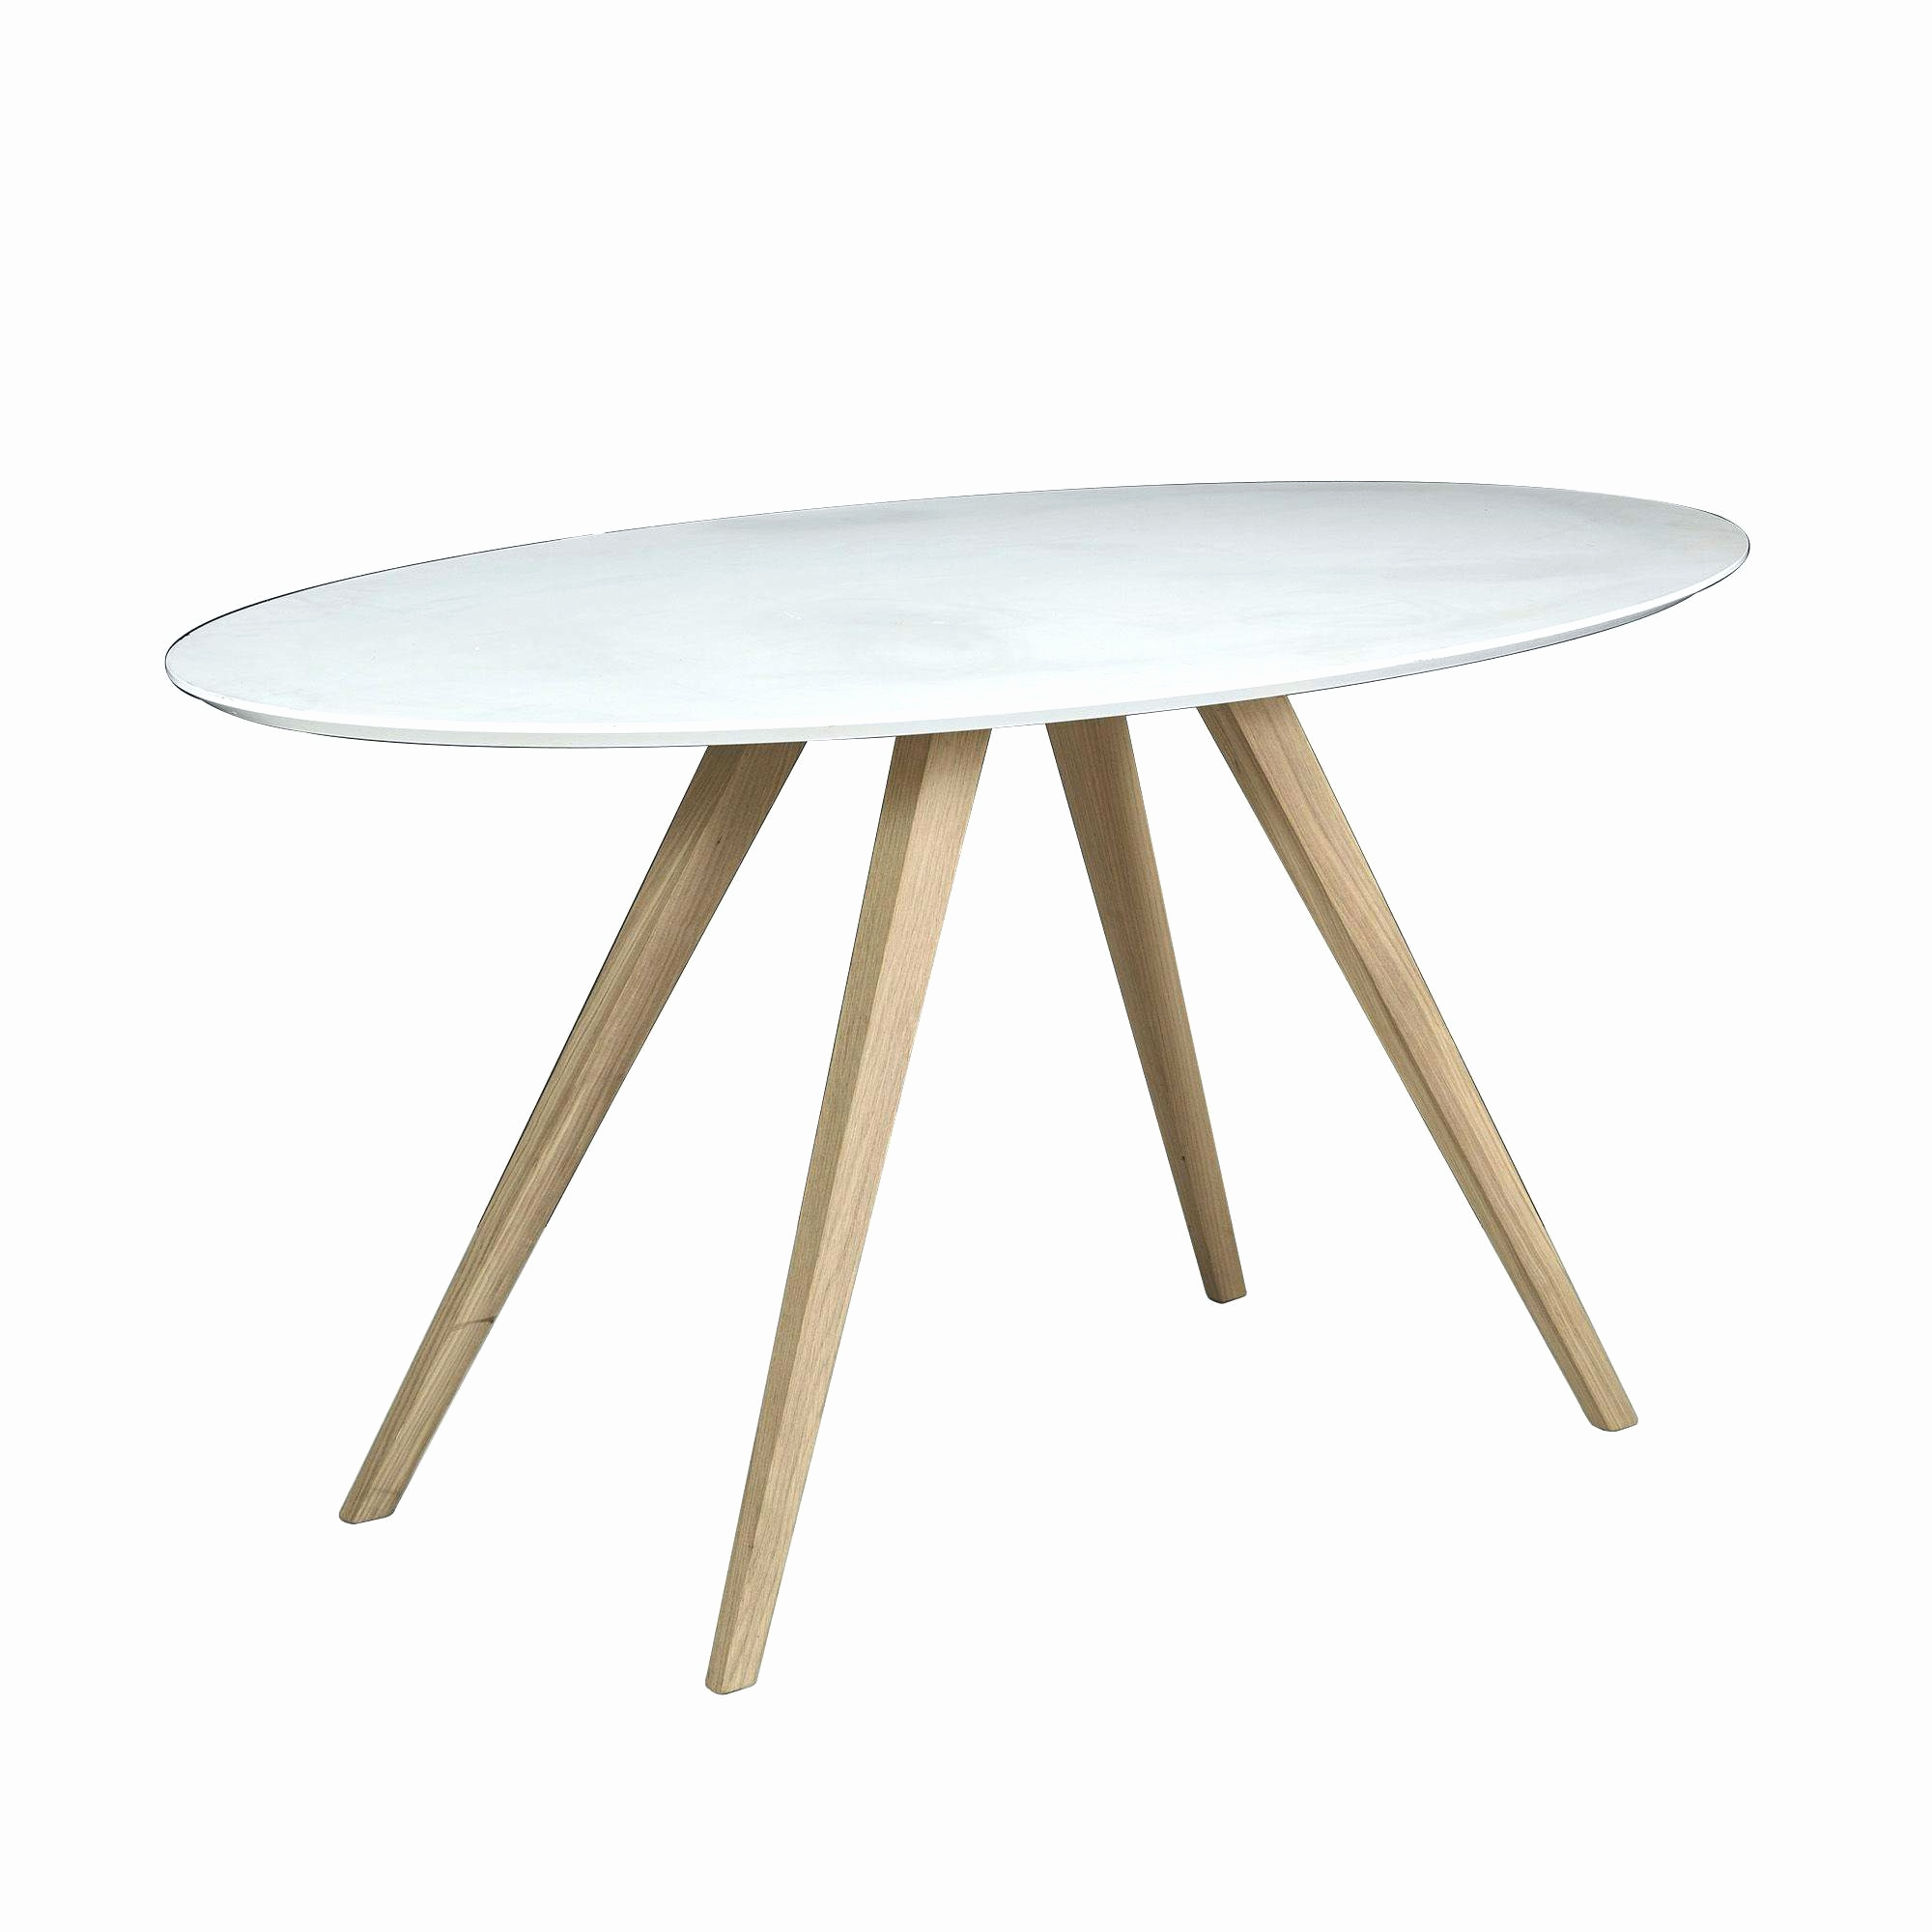 Table De Jardin Alinea Élégant Collection Table De Jardin Fermob Nouveau Tables De Jardin Table Jardin